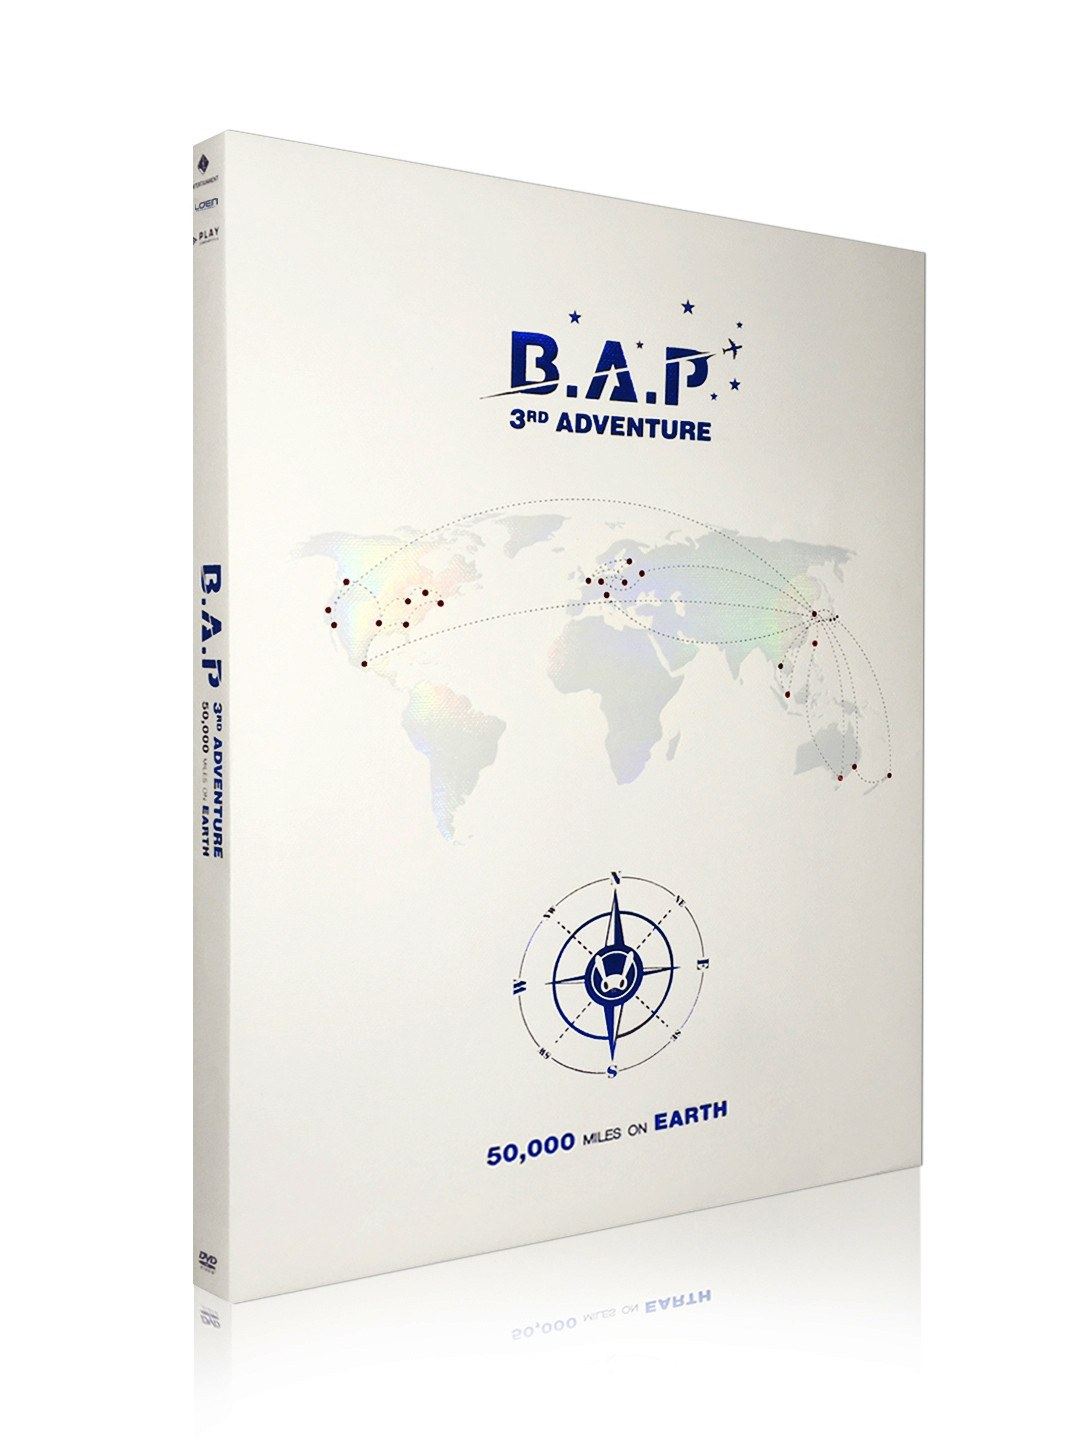 [Exclusive] B.A.P 3rd Adventure [50,000 Miles on Earth]